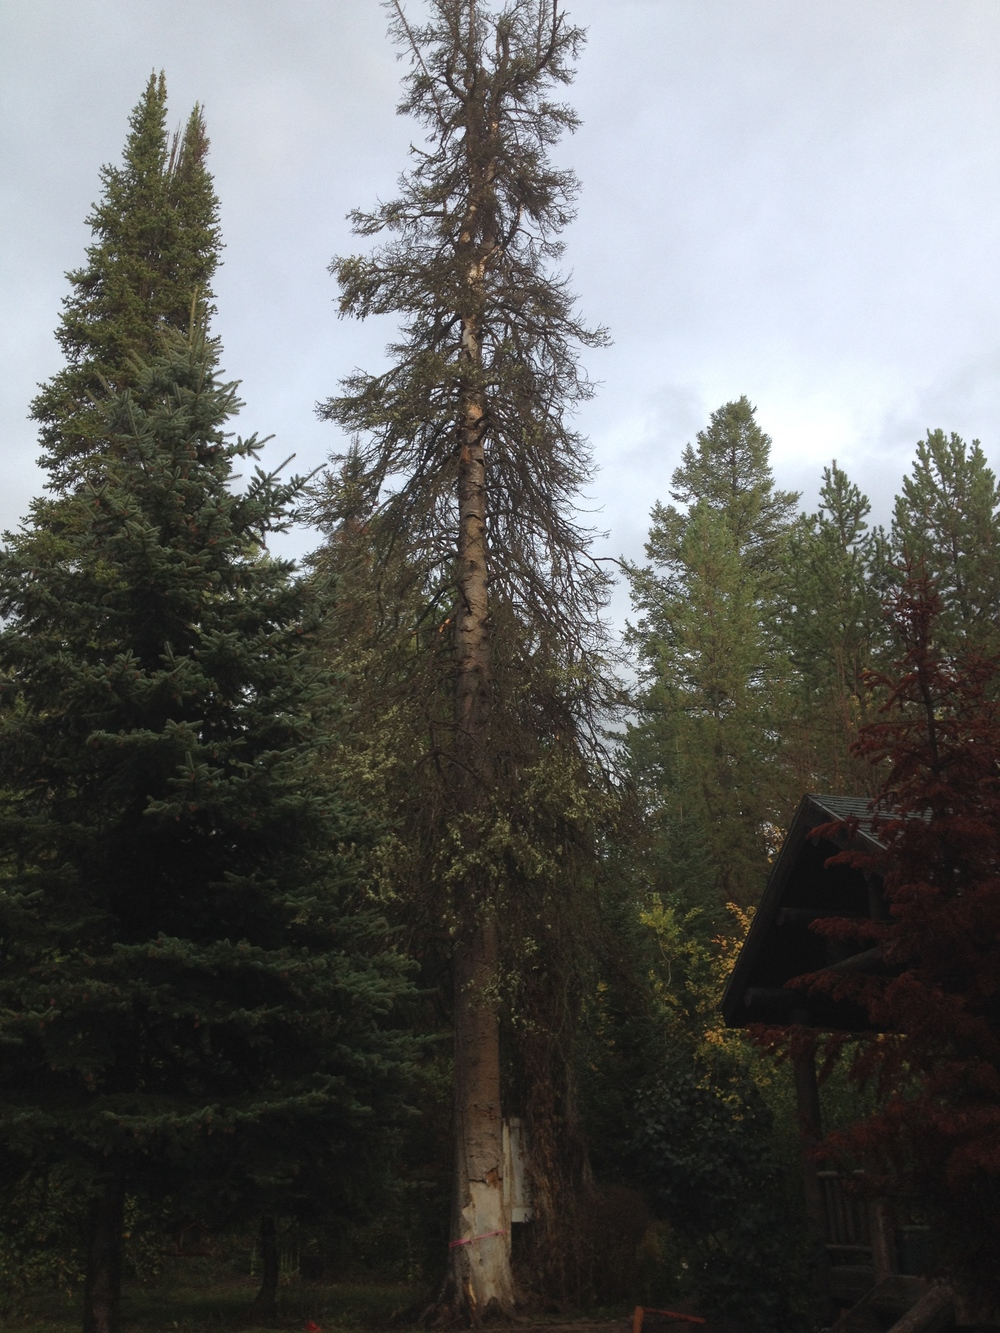 Mature Dead Subalpine Fir Near Home